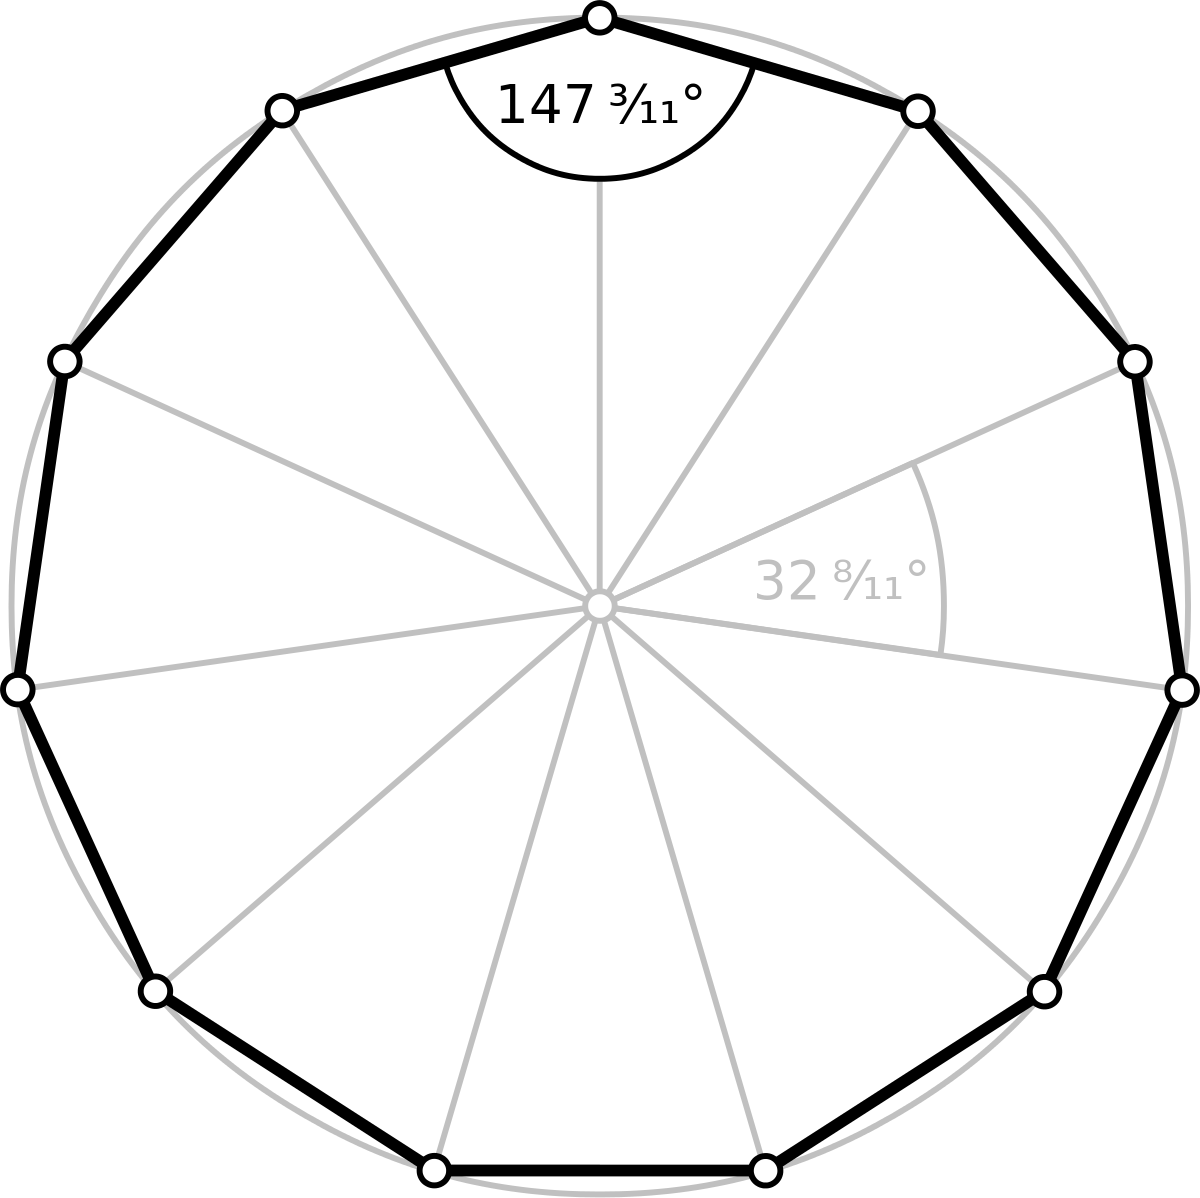 Hendecagon wikipedia . Polygons drawing easy transparent